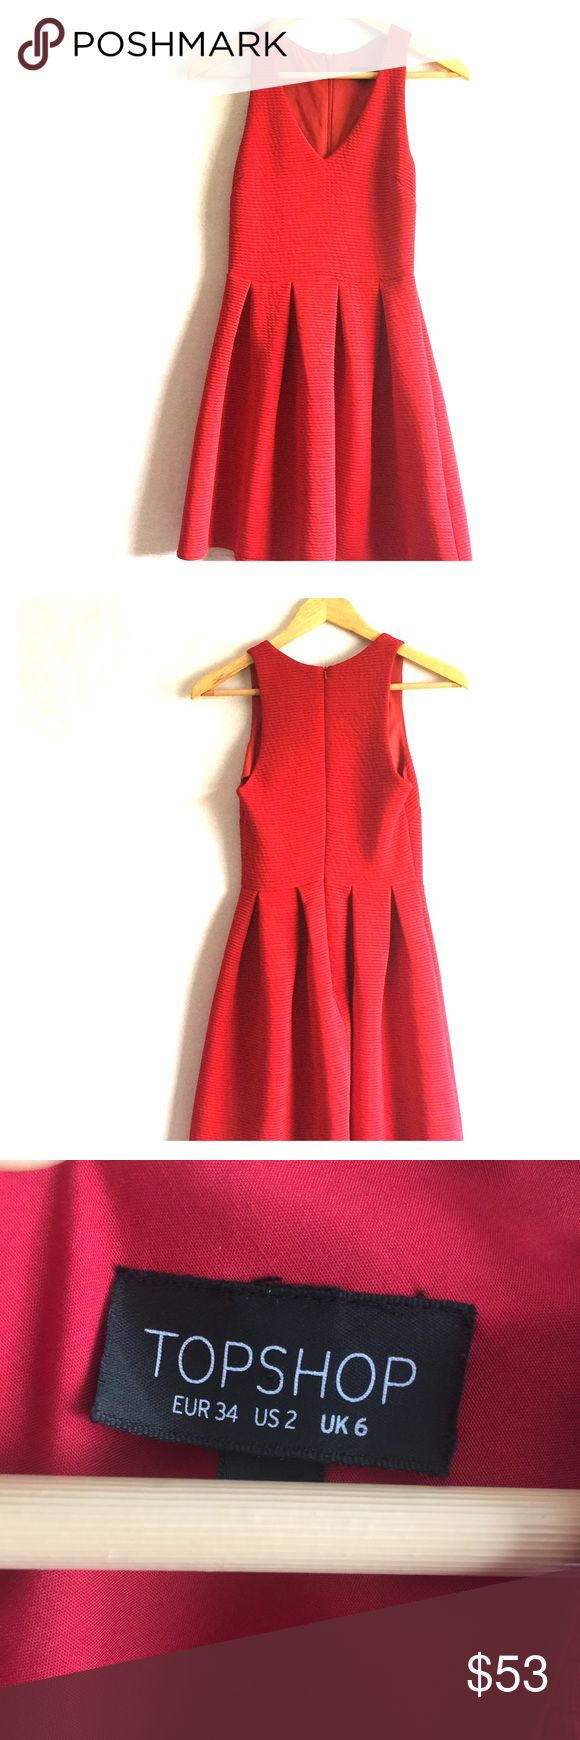 Topshop Red Baby Doll Dress SALE! Topshop Red Baby Doll Designer Style Alaia Dress Celebrity Style. Dress is in excellent condition and includes a zipper on the back that zips down 13 inches. Great for a casual day out on the town or to dress up for a date or an evening reception. Measurements: Pit to pit is 13 inches, height is 36.5 inches, and width is 12.5 inches.  Size 2 Material: 95% polyester and 5% elastane Lining is 65% polyester and 35% cotton. Machine wash separately.  Made in…